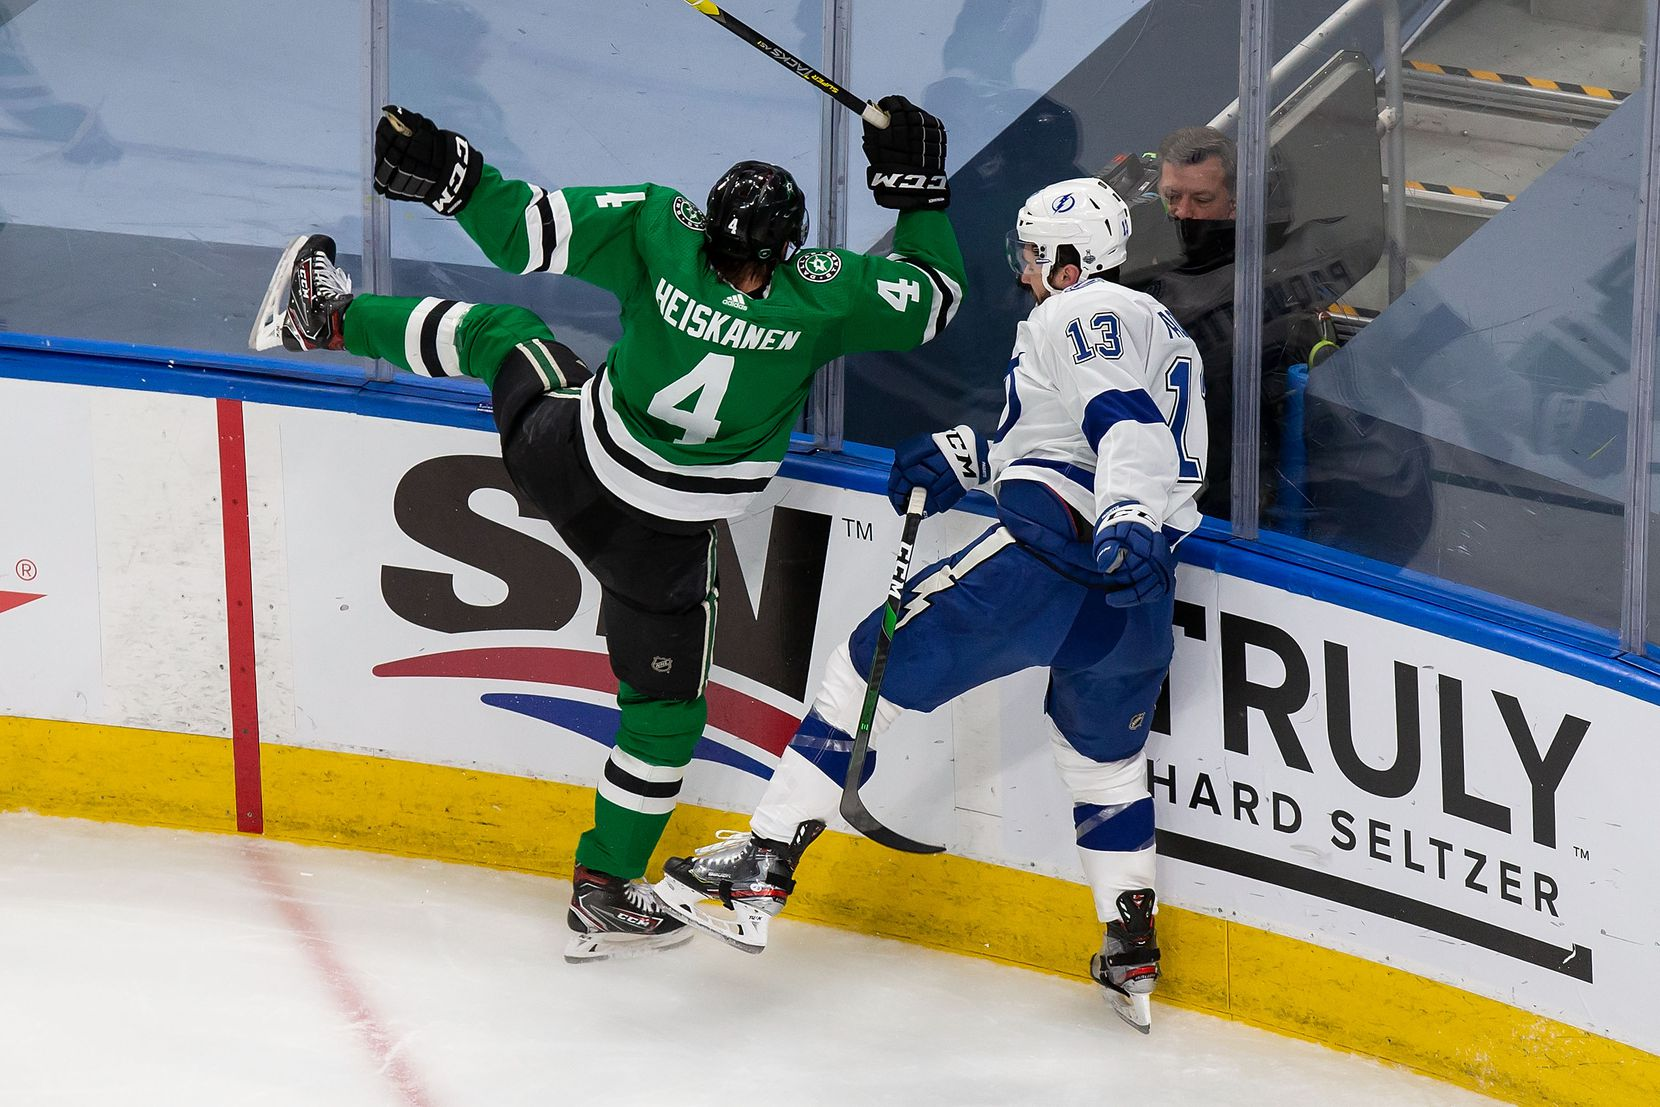 Miro Heiskanen (4) of the Dallas Stars collides with Cedric Paquette (13) of the Tampa Bay Lightning during Game Three of the Stanley Cup Final at Rogers Place in Edmonton, Alberta, Canada on Wednesday, September 23, 2020. (Codie McLachlan/Special Contributor)